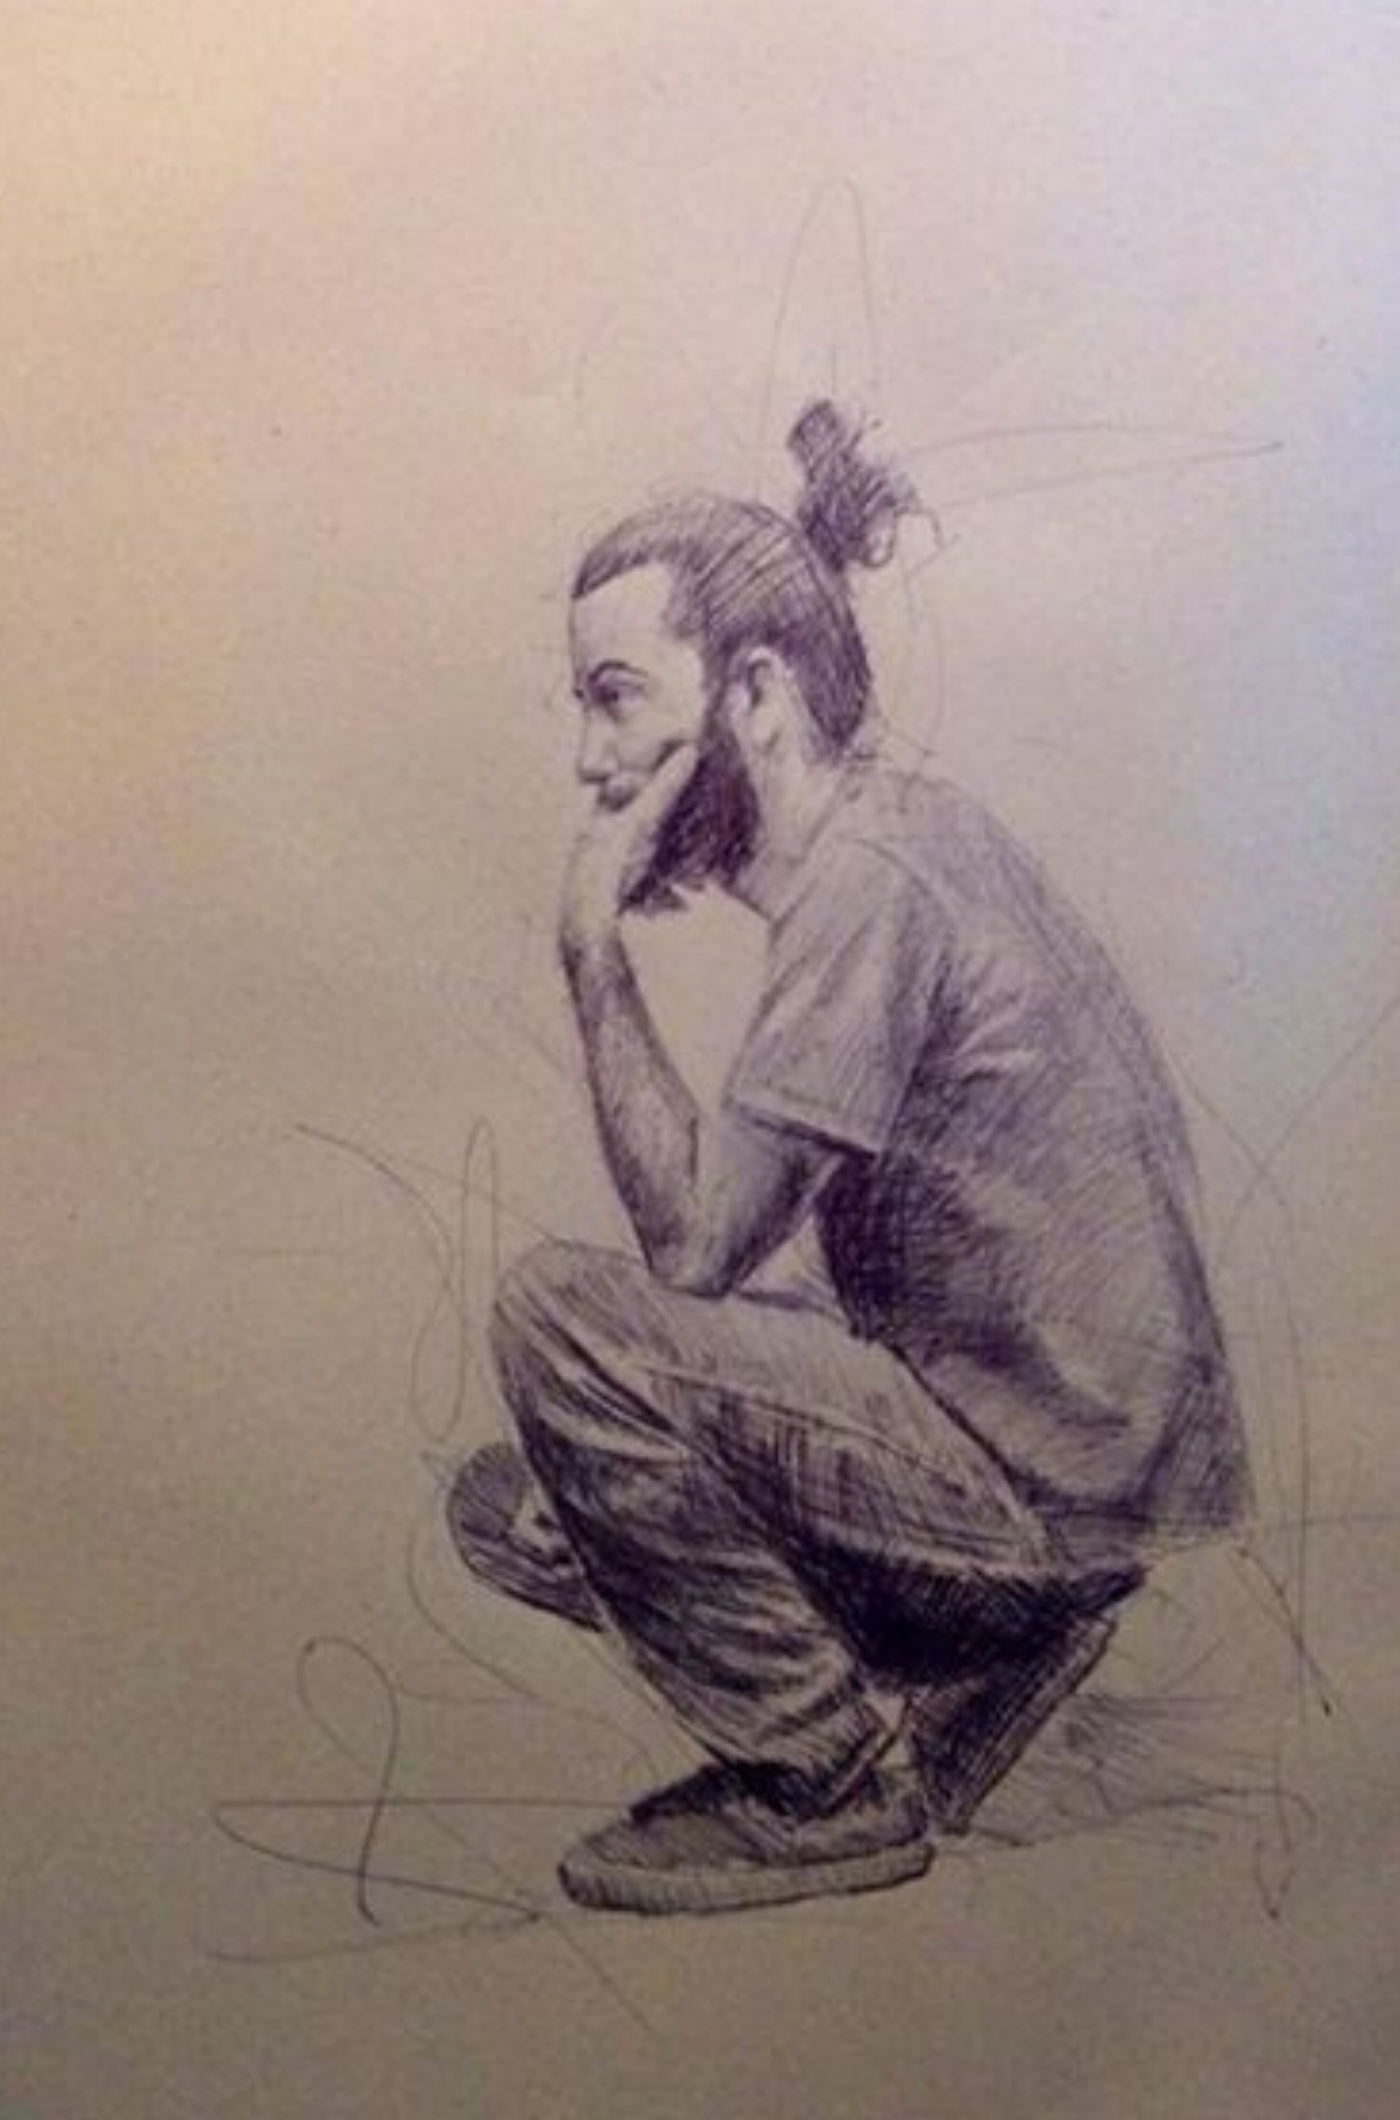 Drawing by Eric Brennan (unbeknowst to Garick Tai-Lee during crits)